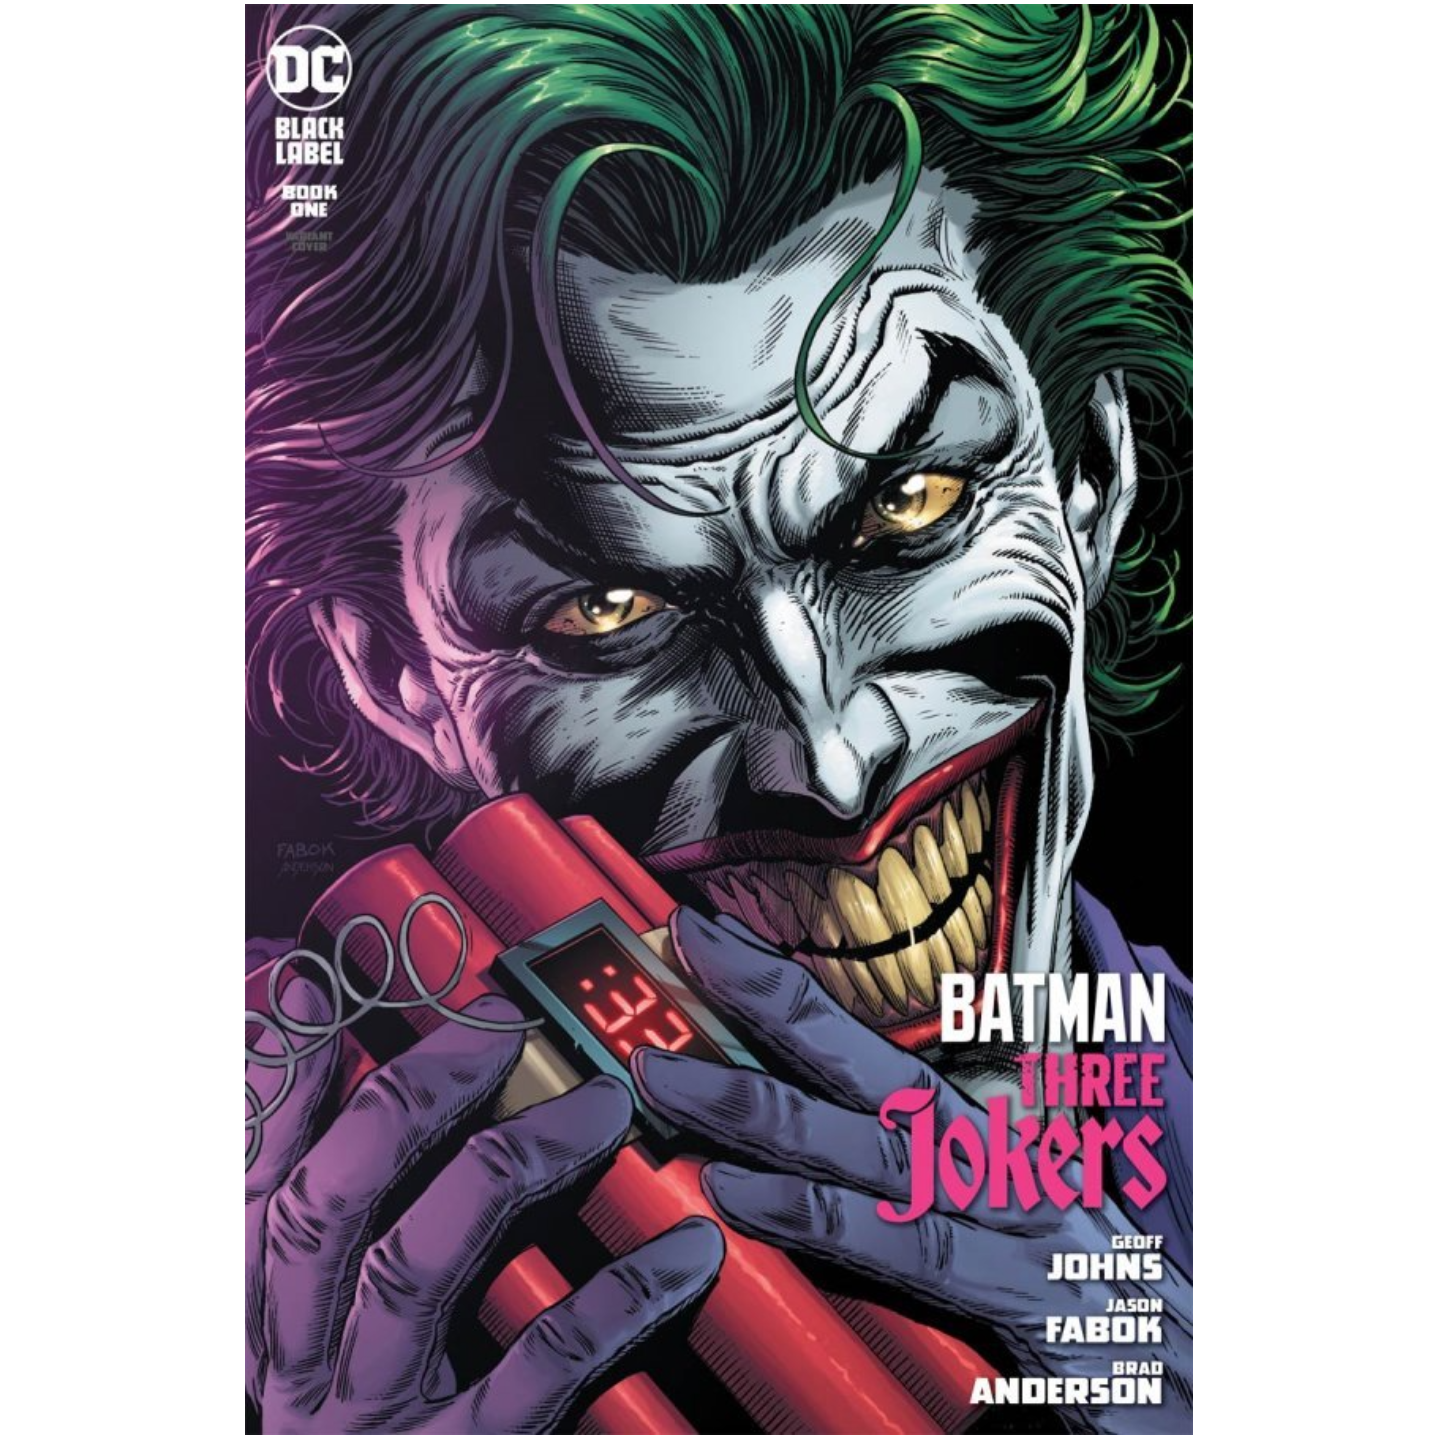 BATMAN THREE JOKERS 1 OF 3 PREMIUM VAR C